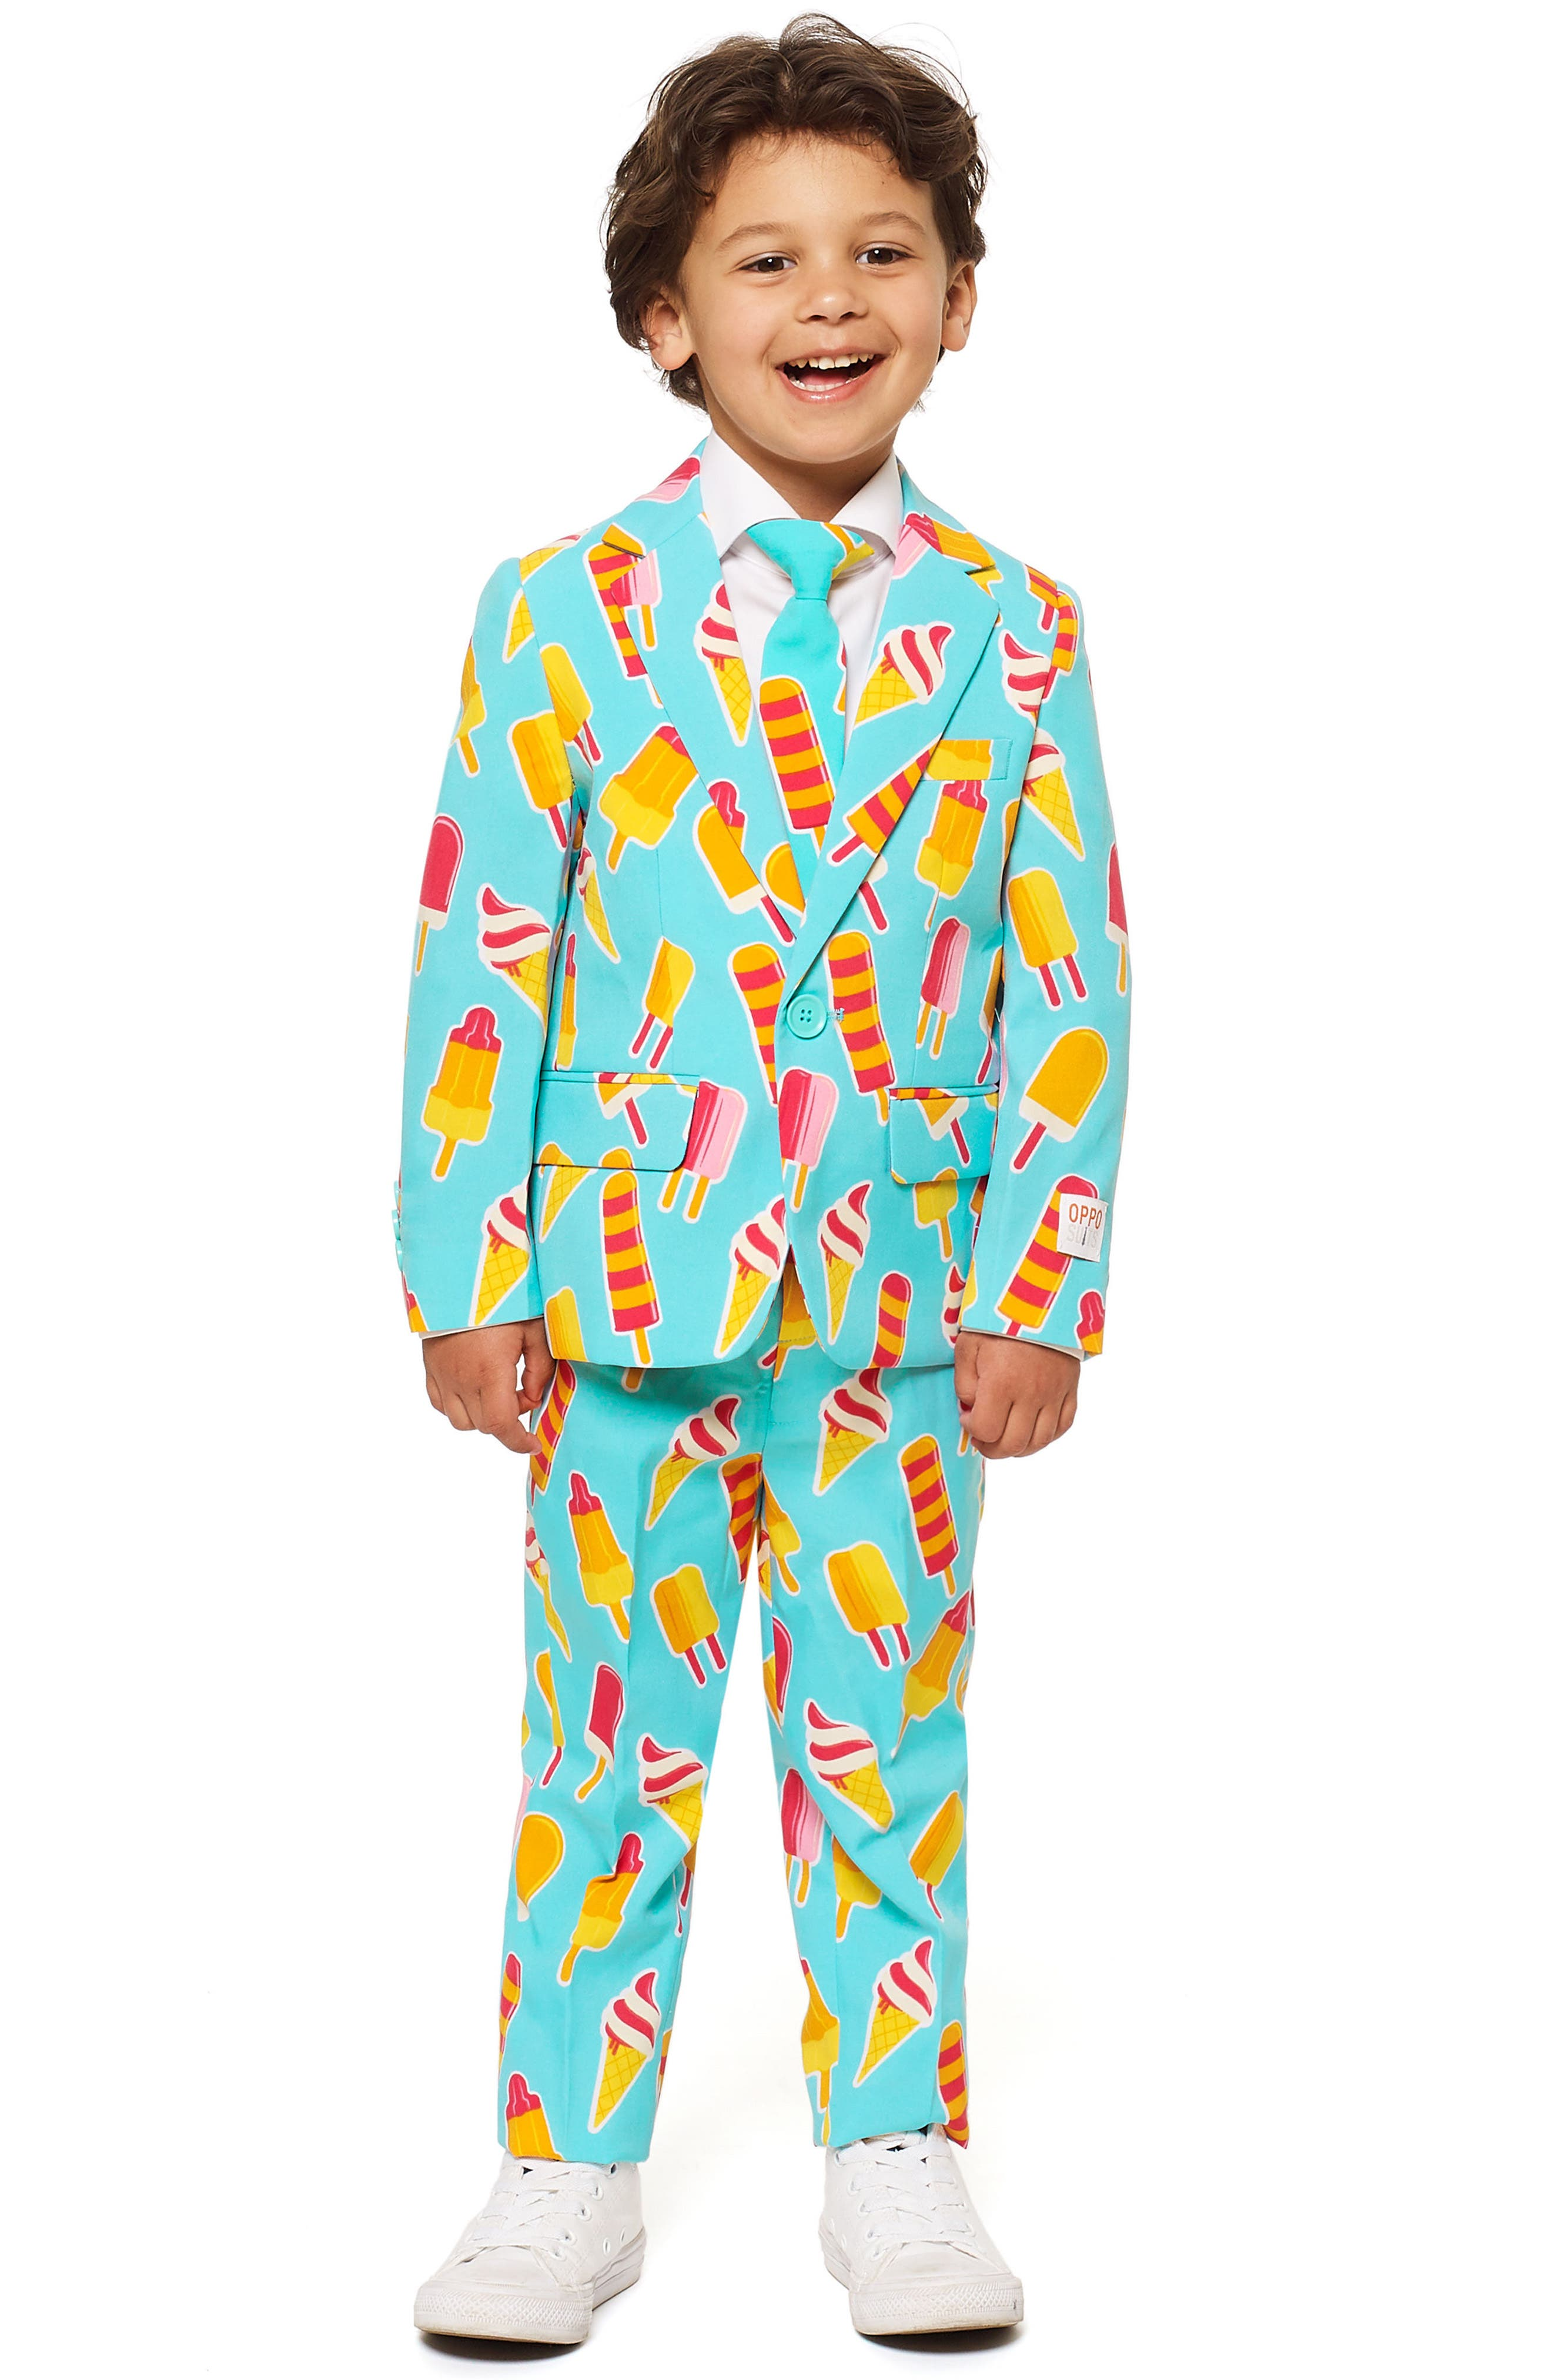 Cool Cones Two-Piece Suit with Tie,                         Main,                         color, BLUE